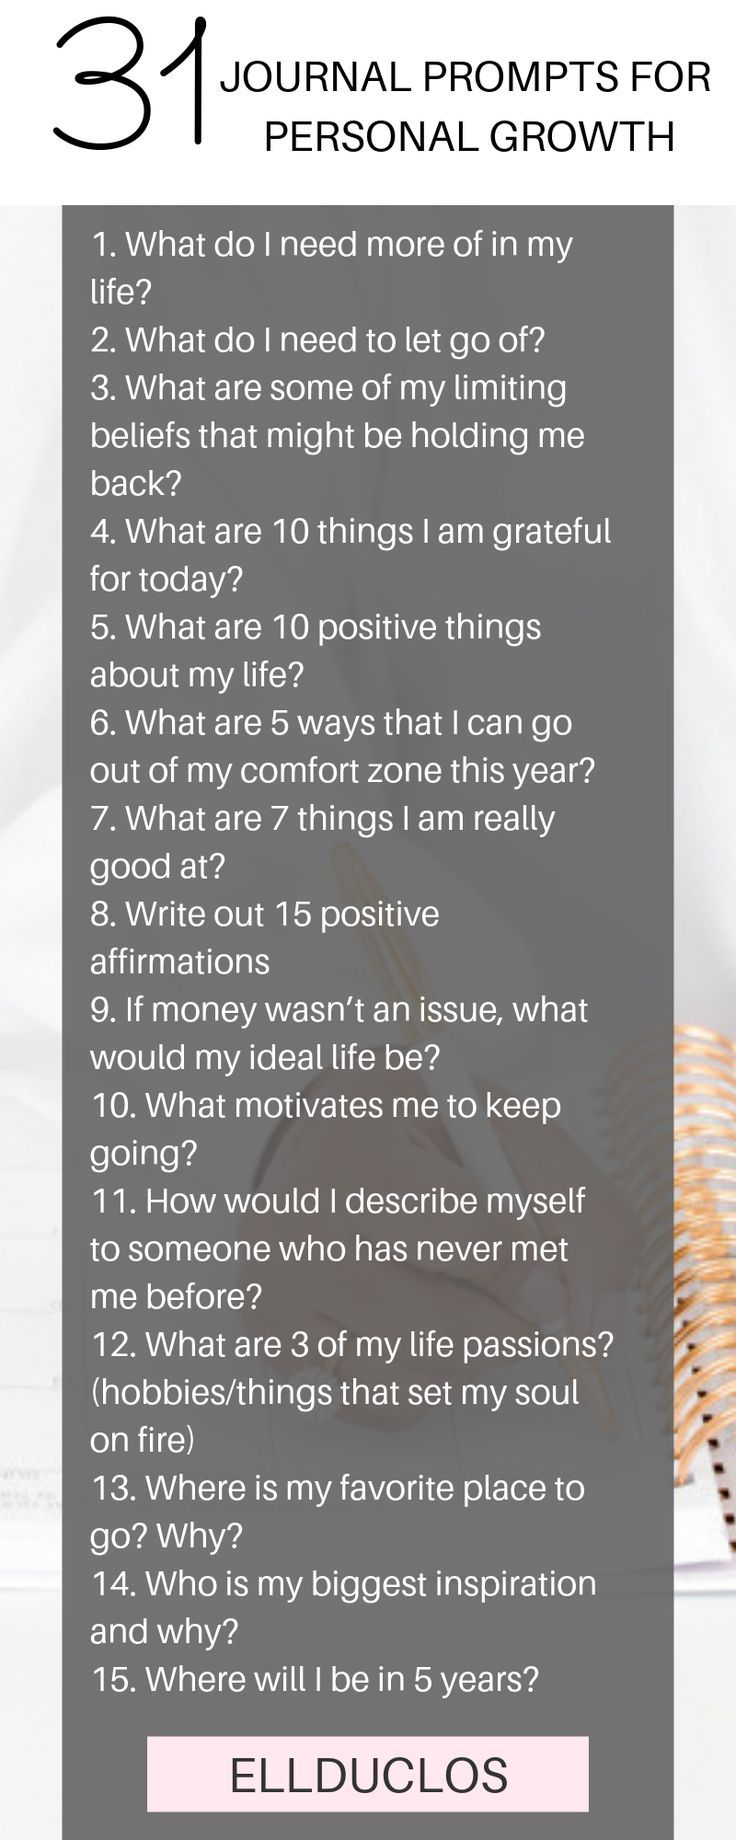 Journal Prompts for Personal Growth & Discovery - ELLDUCLOS